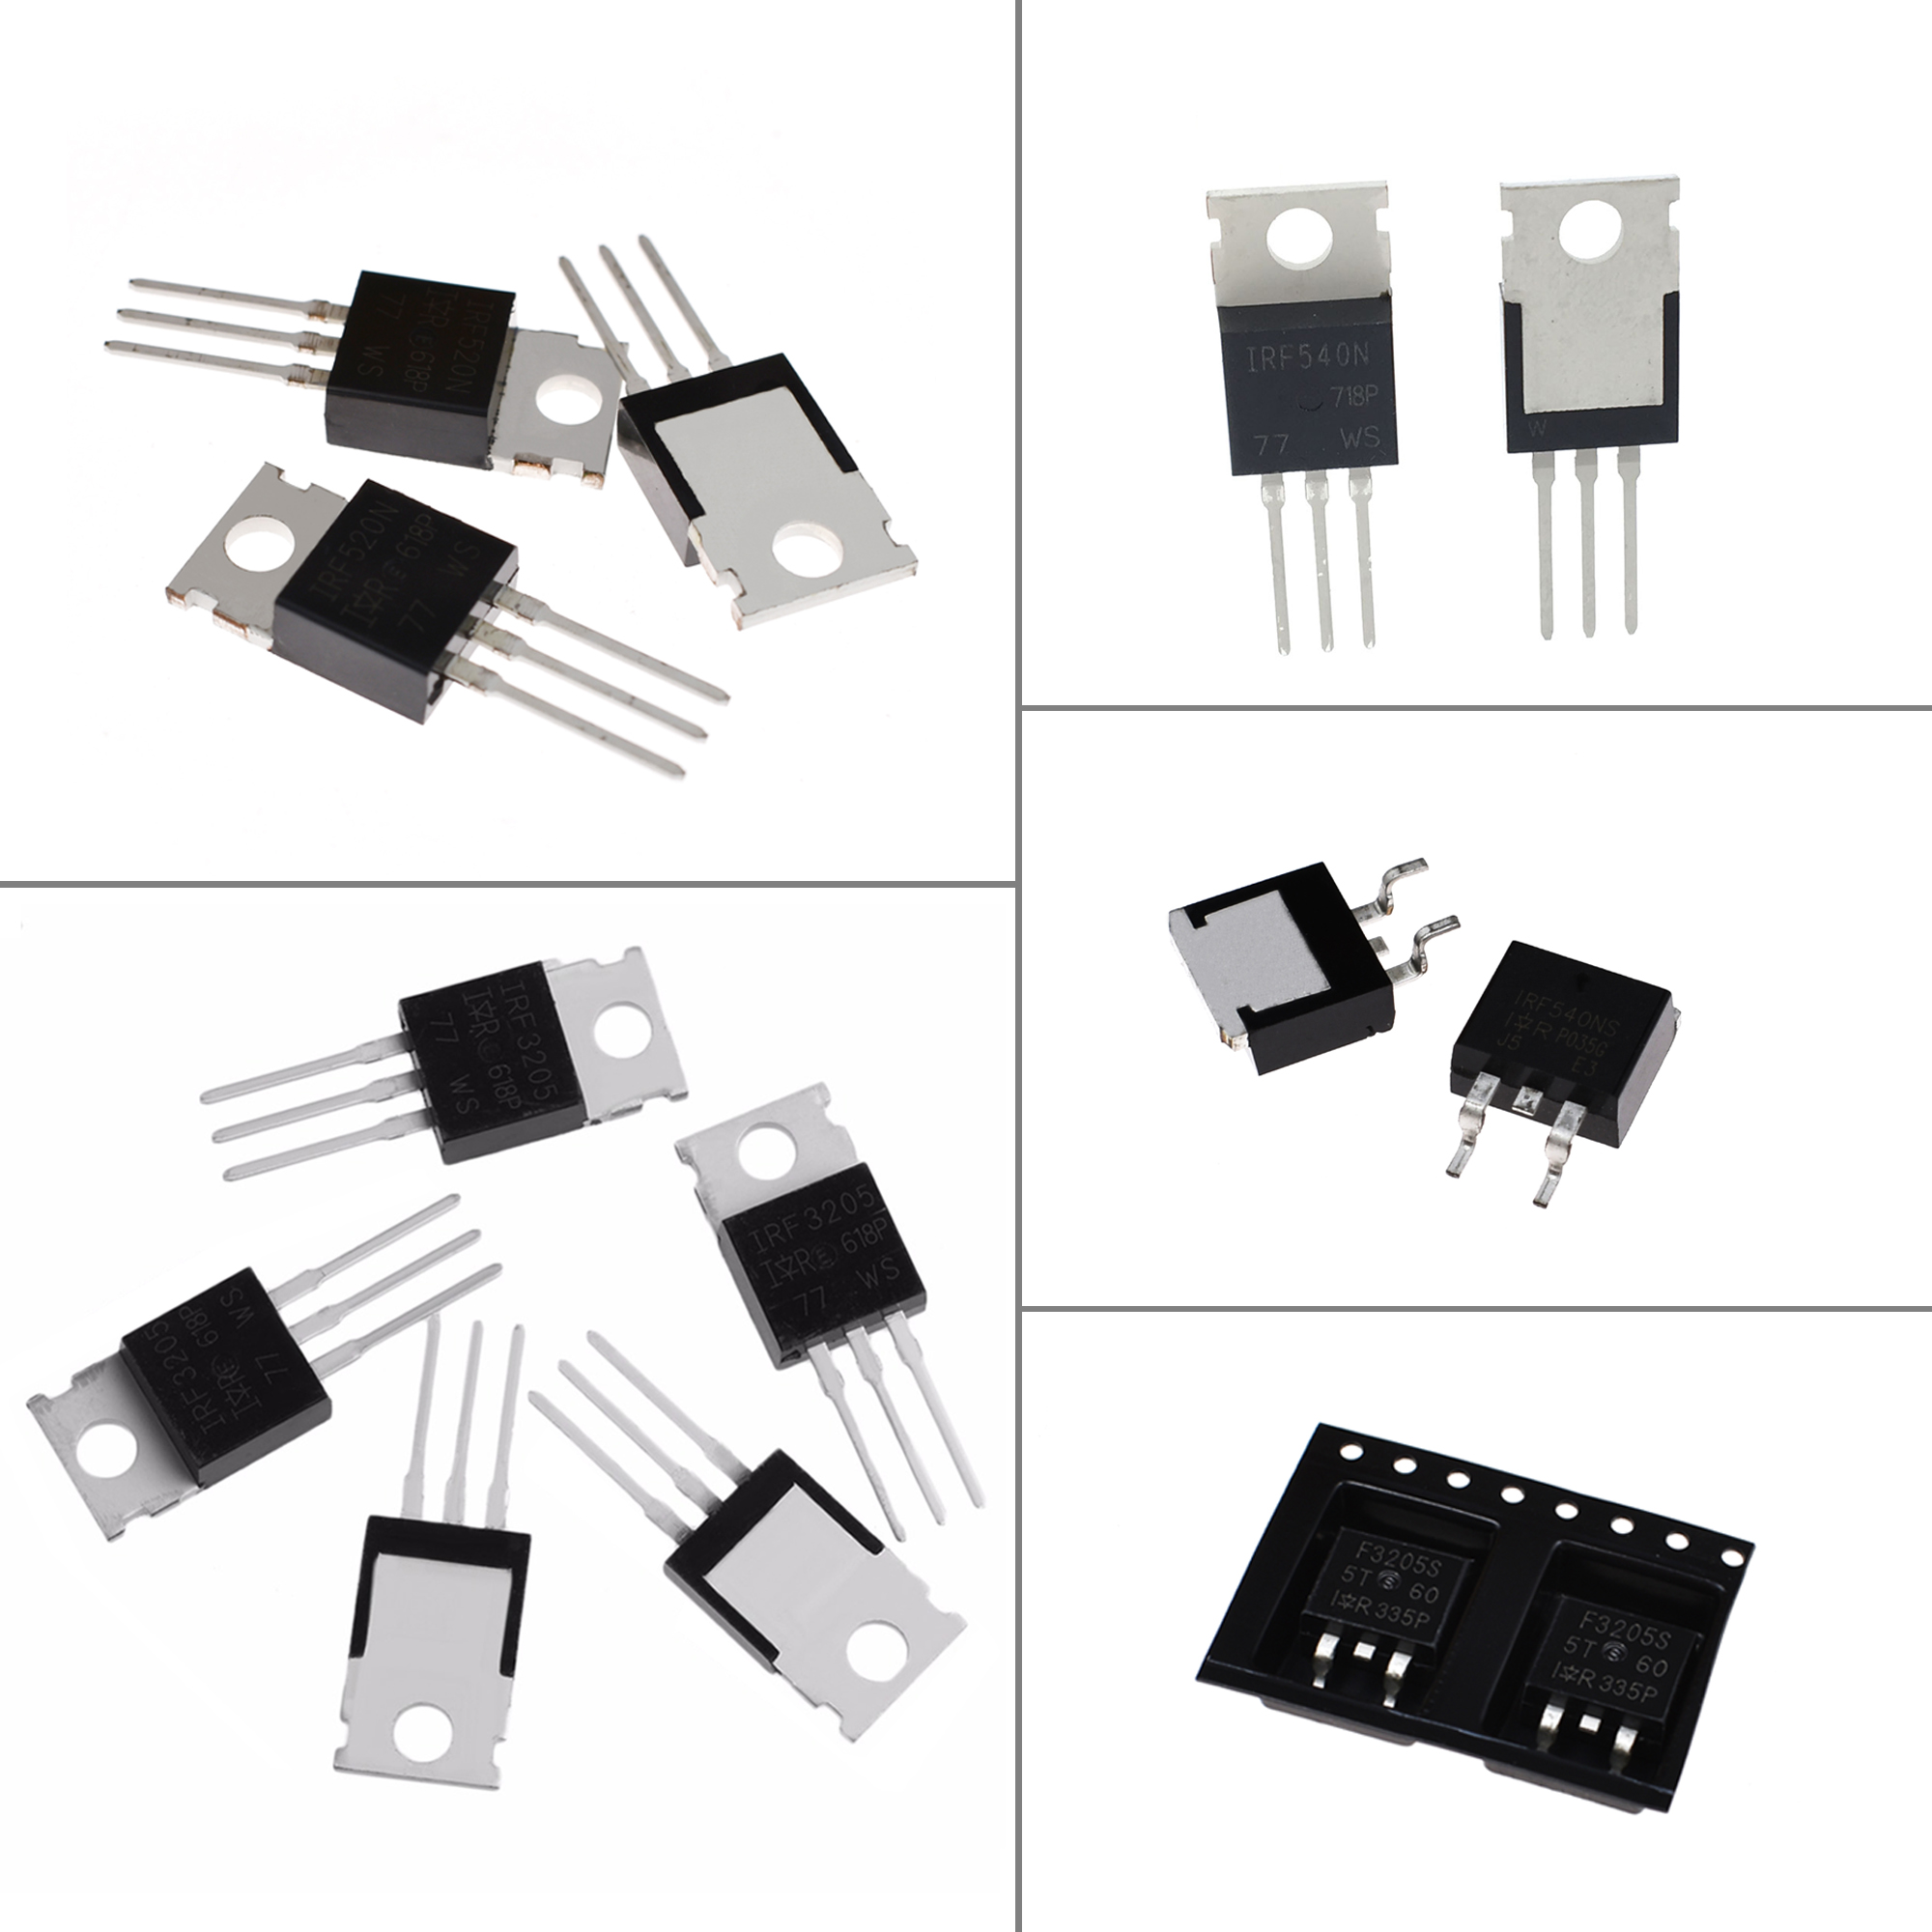 Details about Irf540/irf520 v2 0+ MOSFET Switch l9110s Dual Stepper Motor  Driver 10/15a- show original title